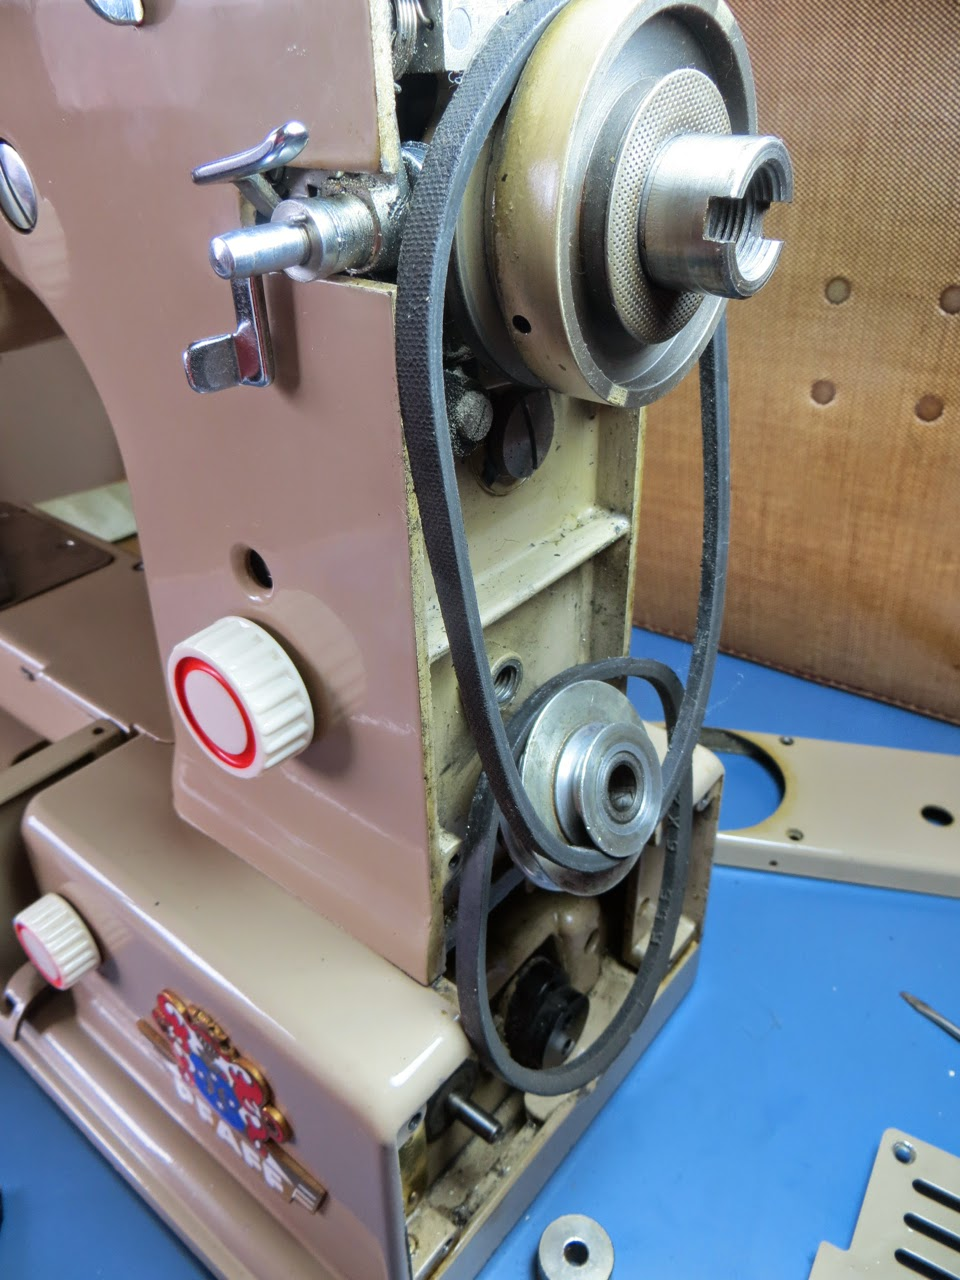 sewing machine cleaning and repair